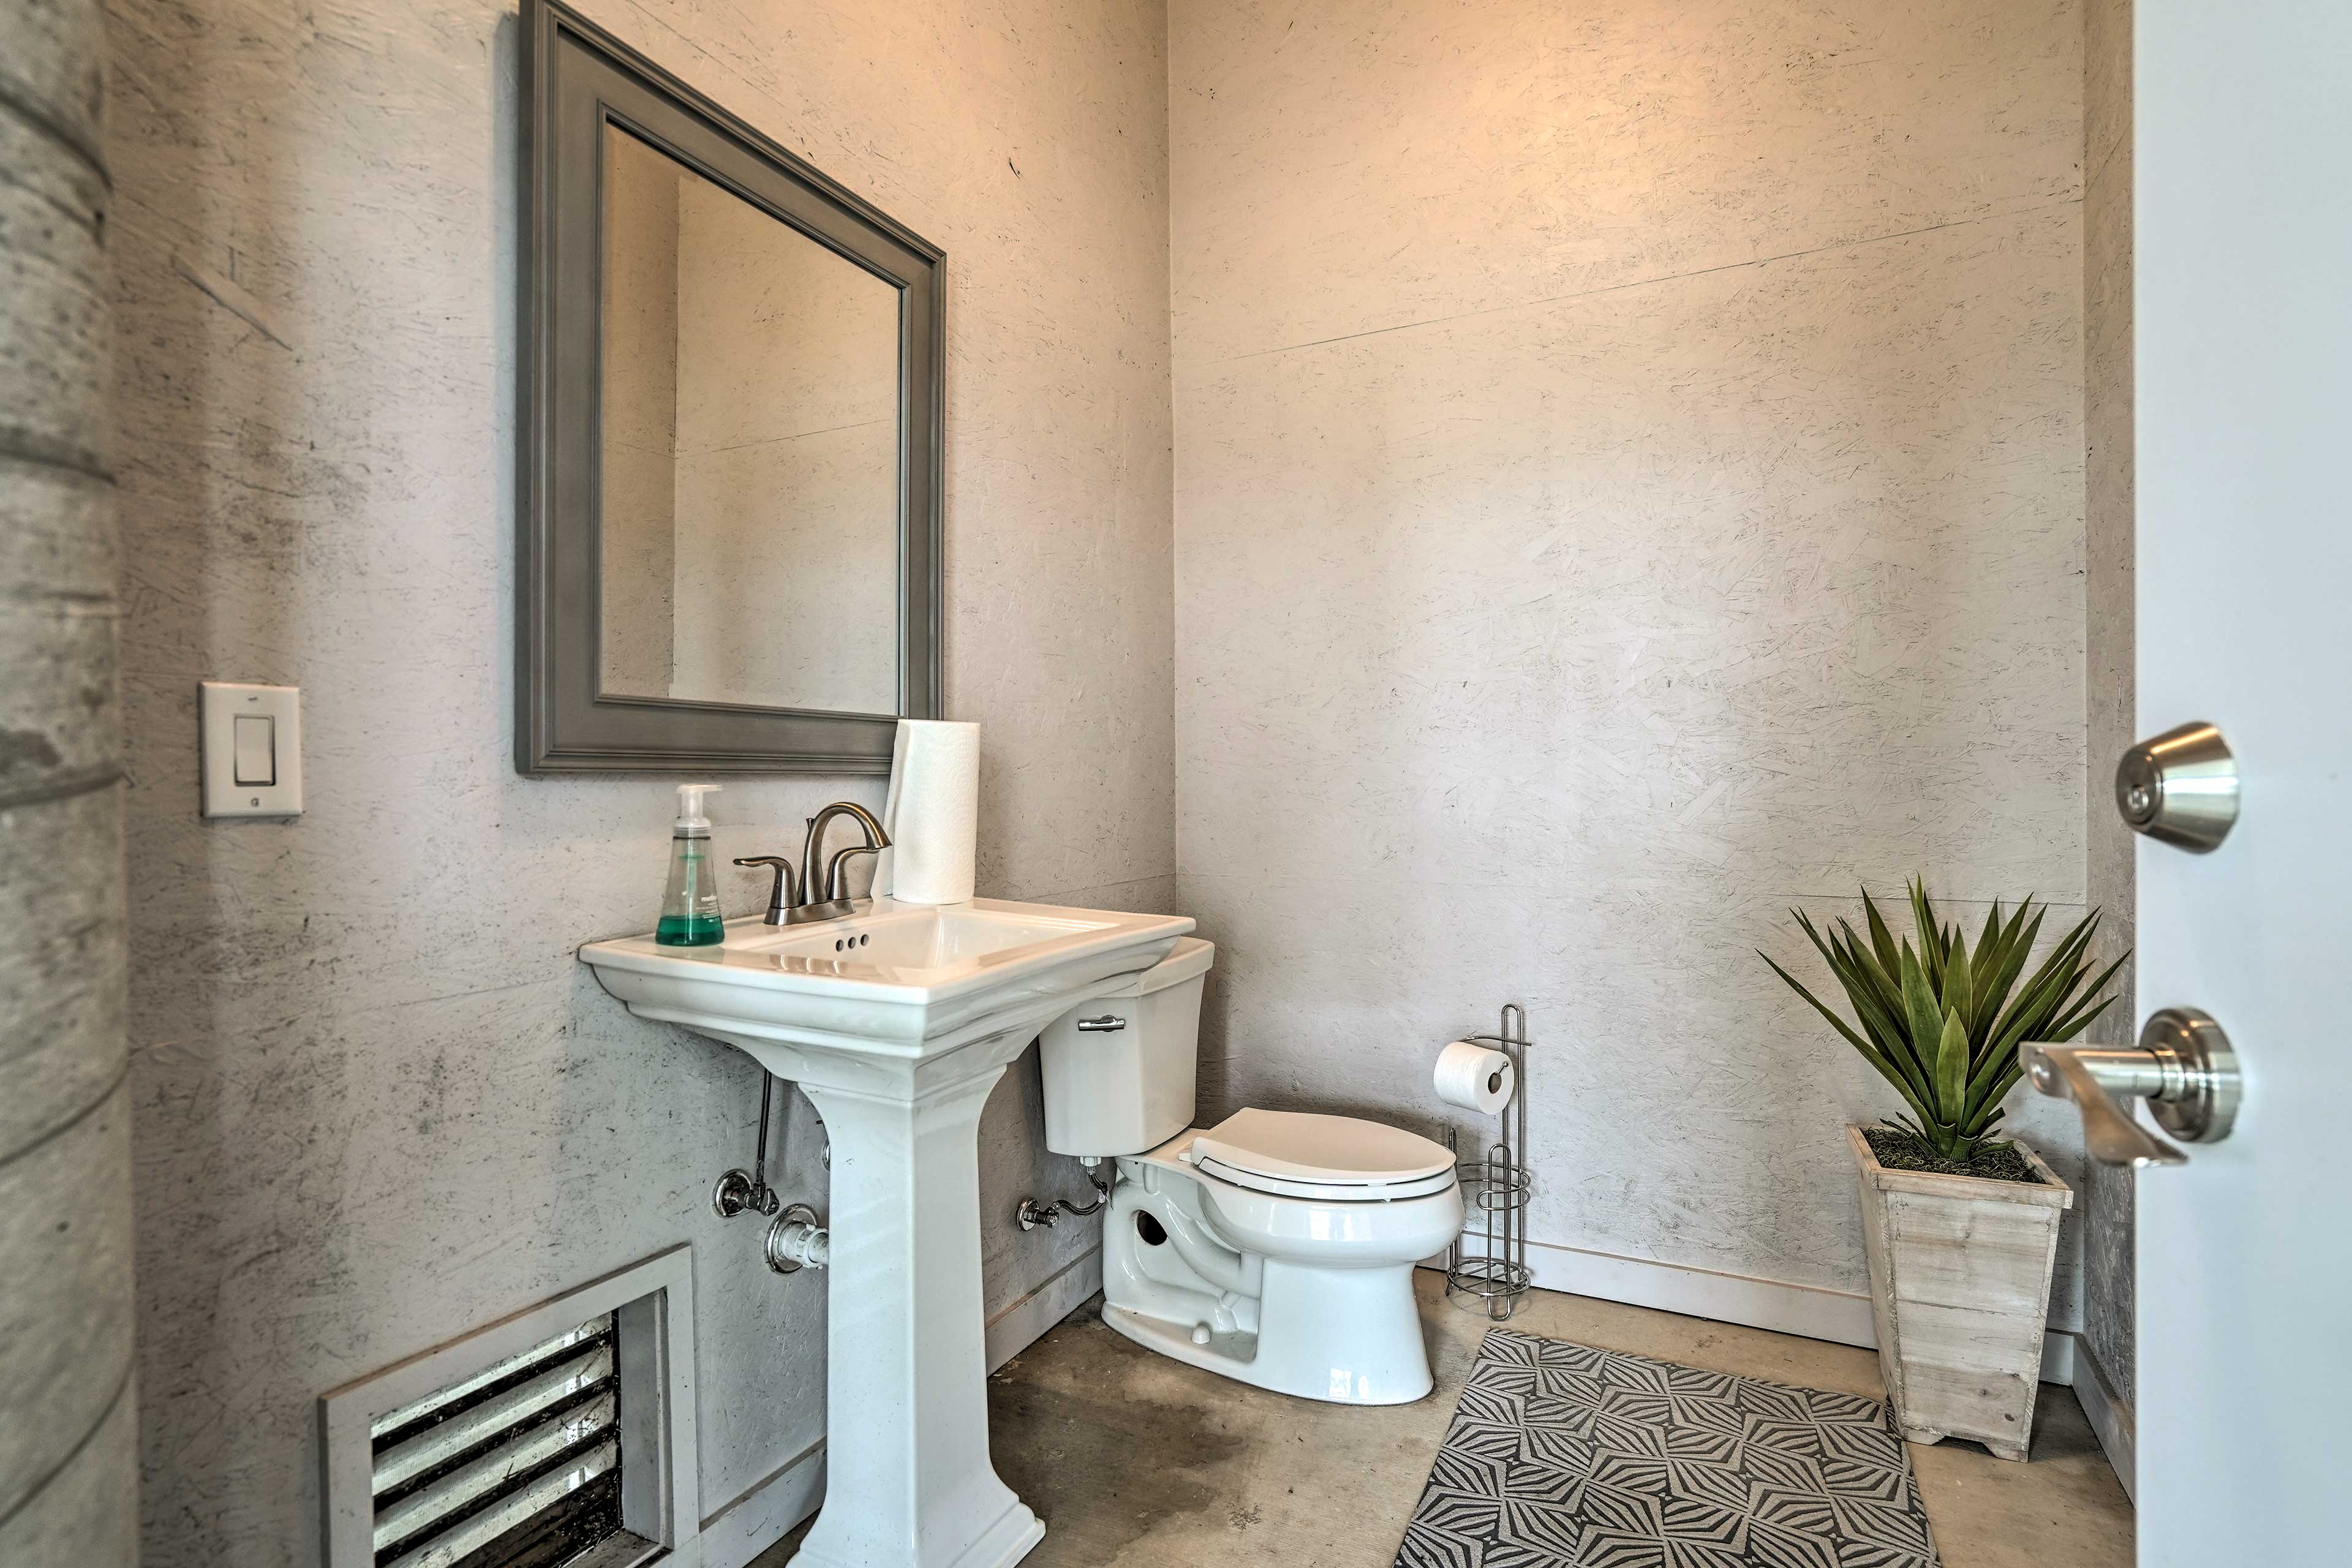 The home has 4.5 bathrooms for guests to use.